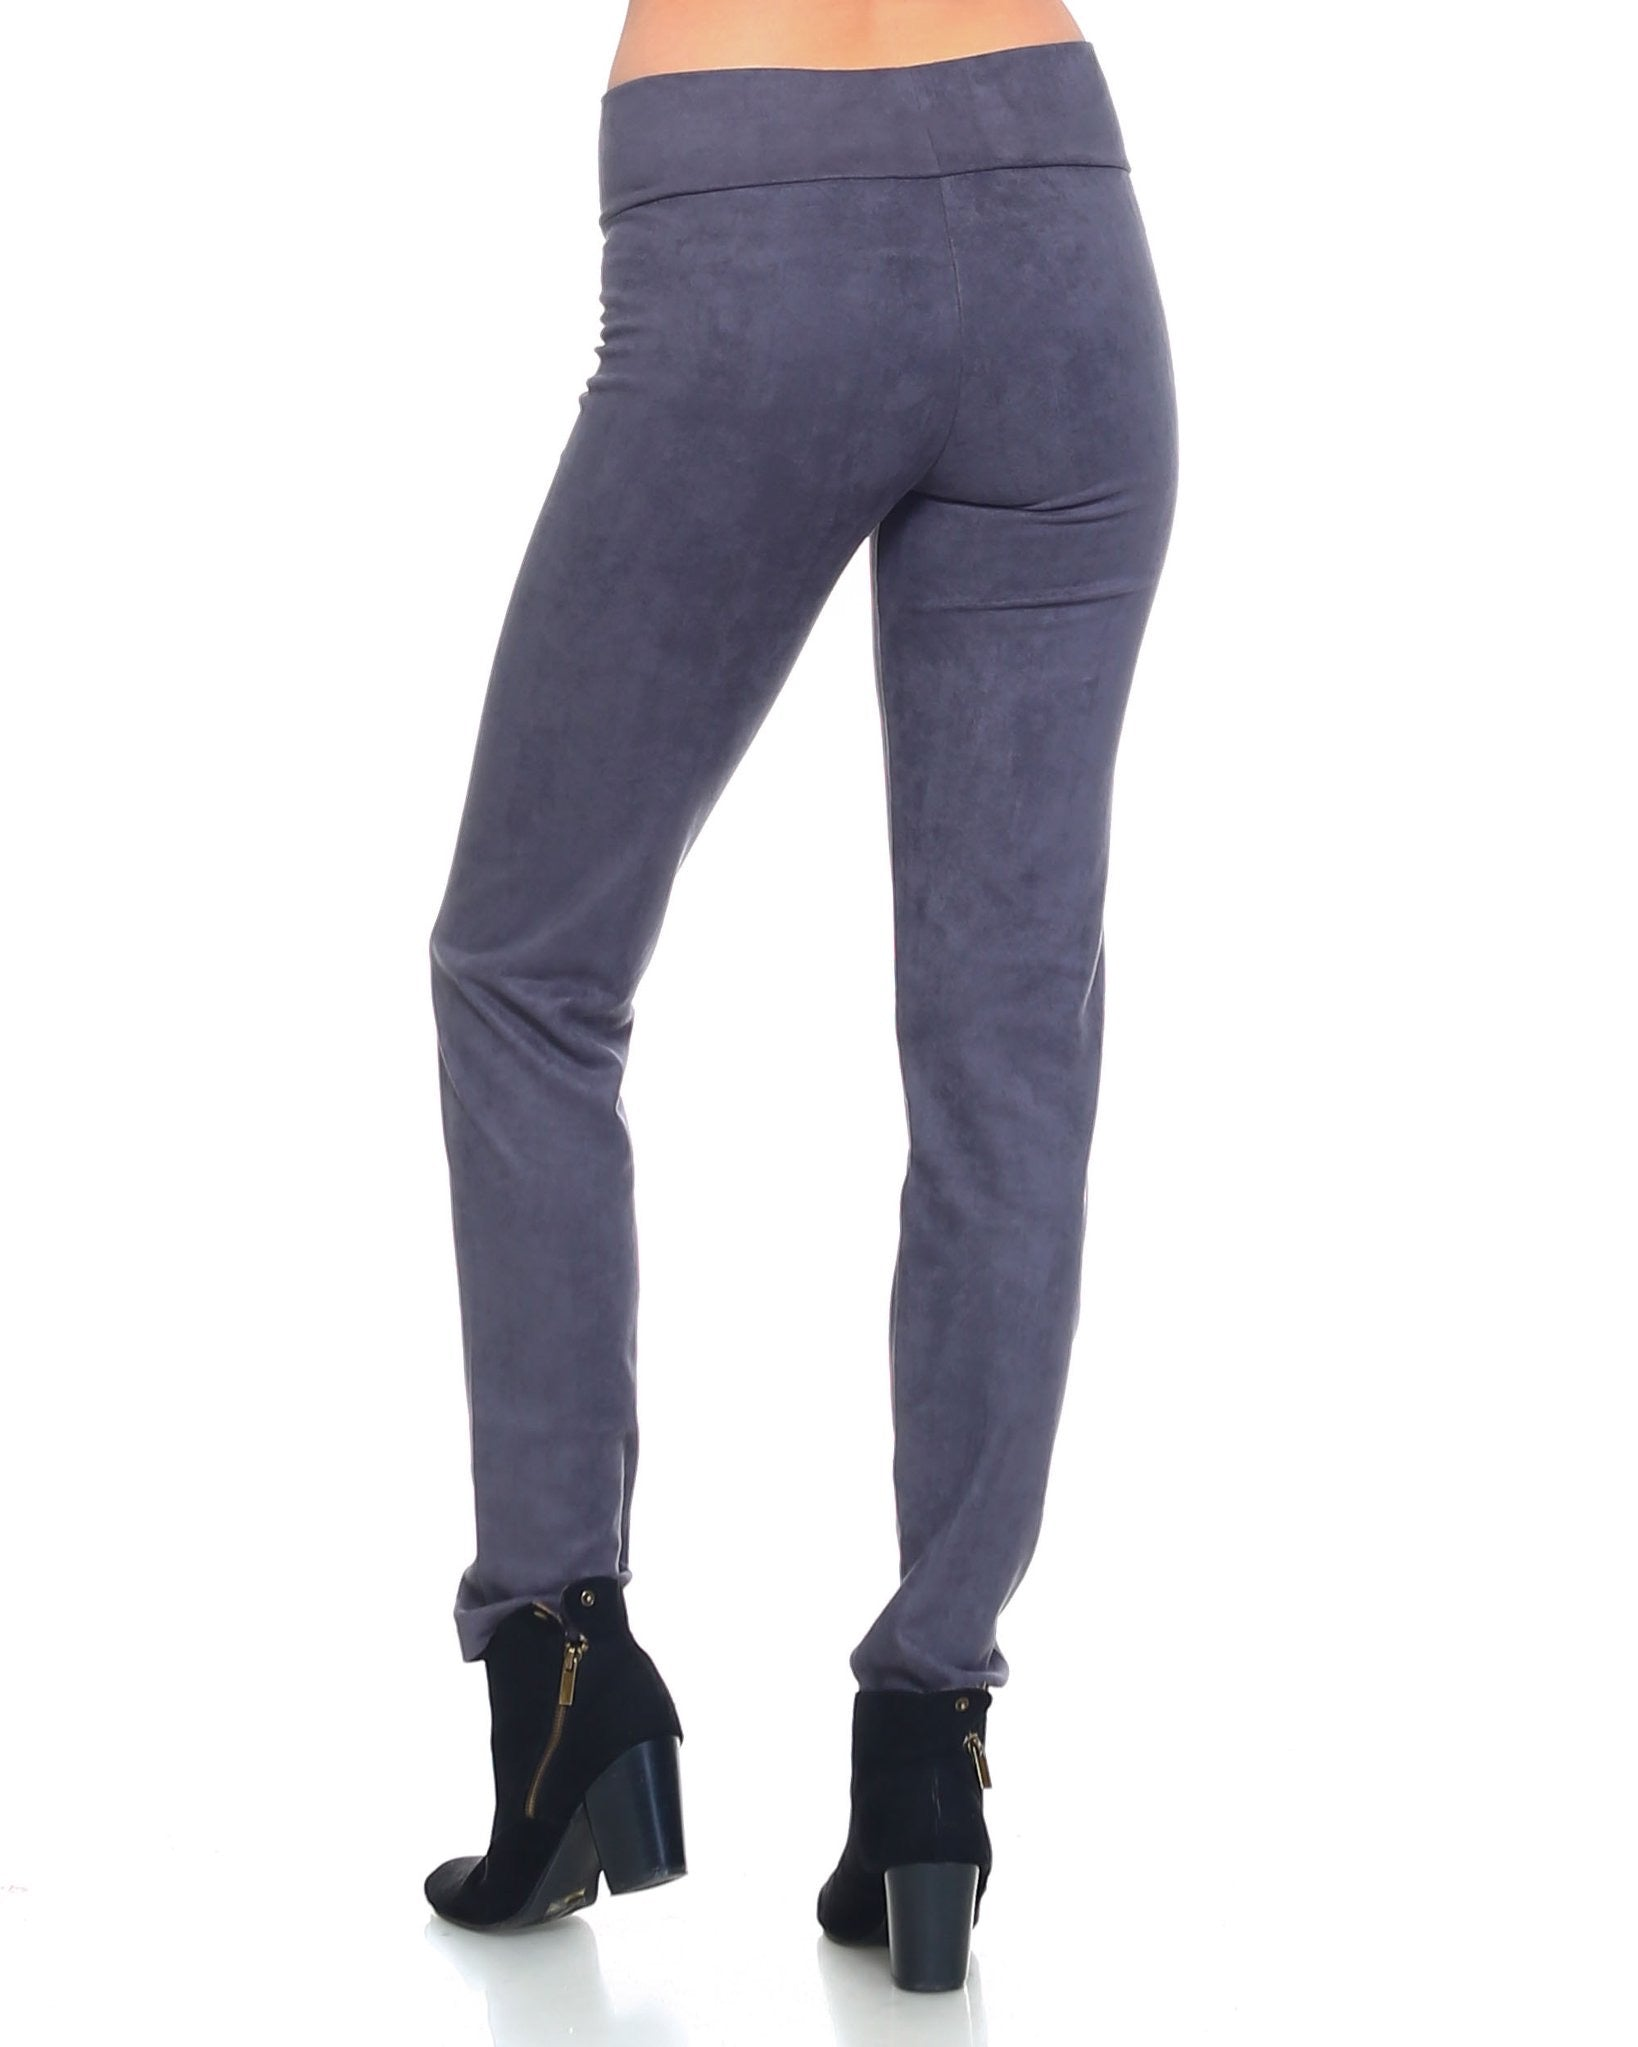 Annelise Leggings - Charcoal